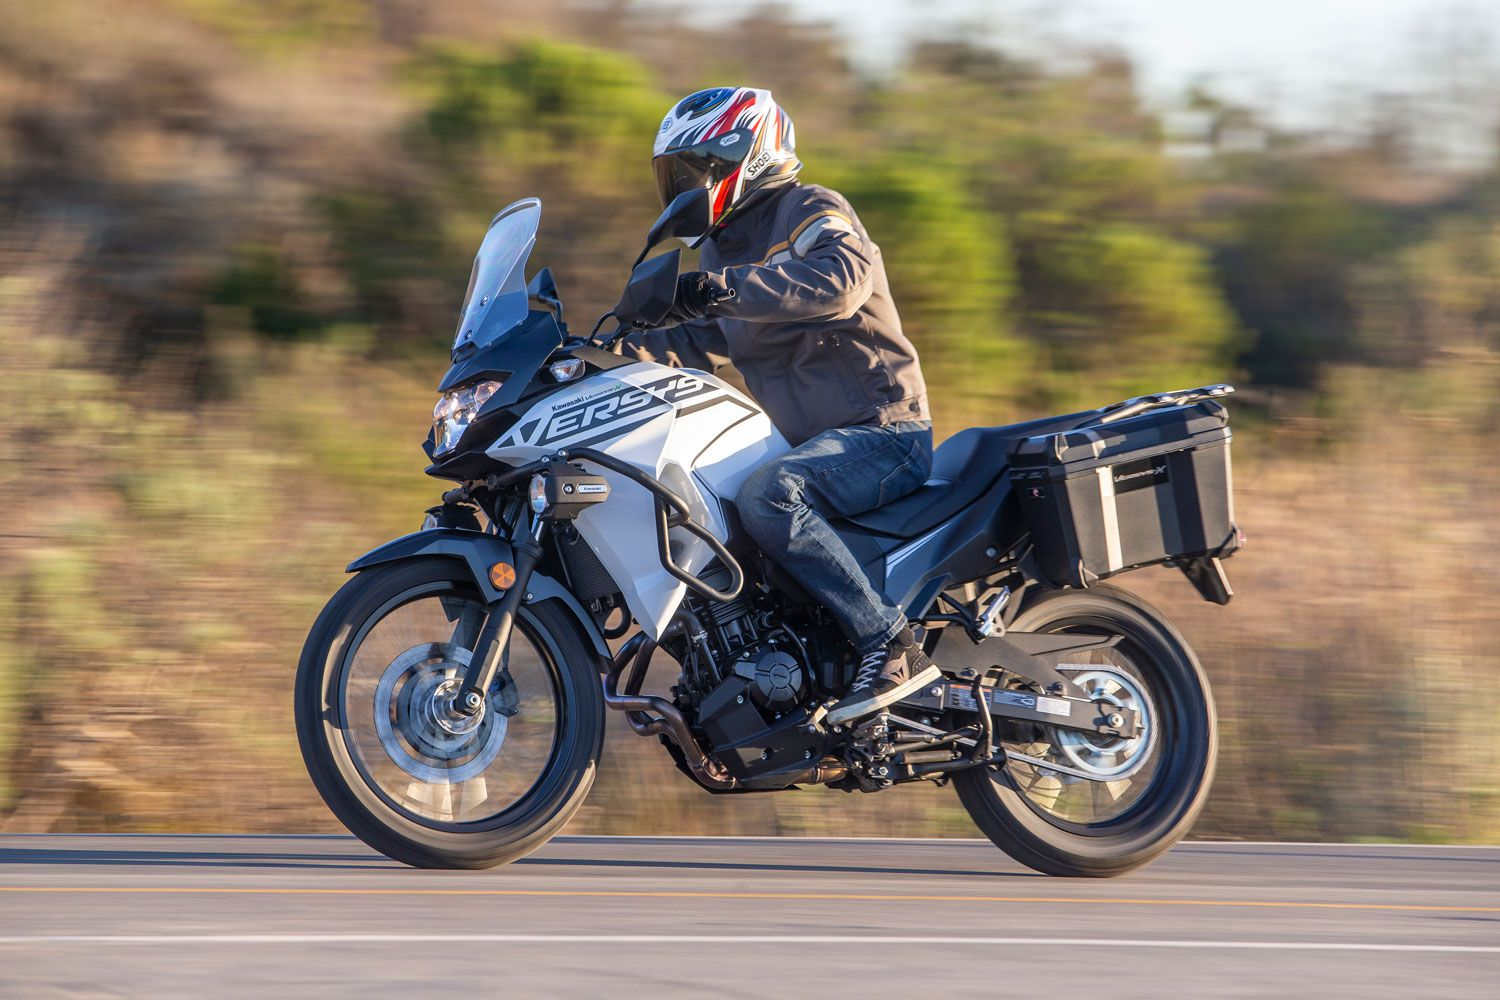 The Kawasaki Versys-X 300 offers beginner and more experienced riders an attainable adventure.